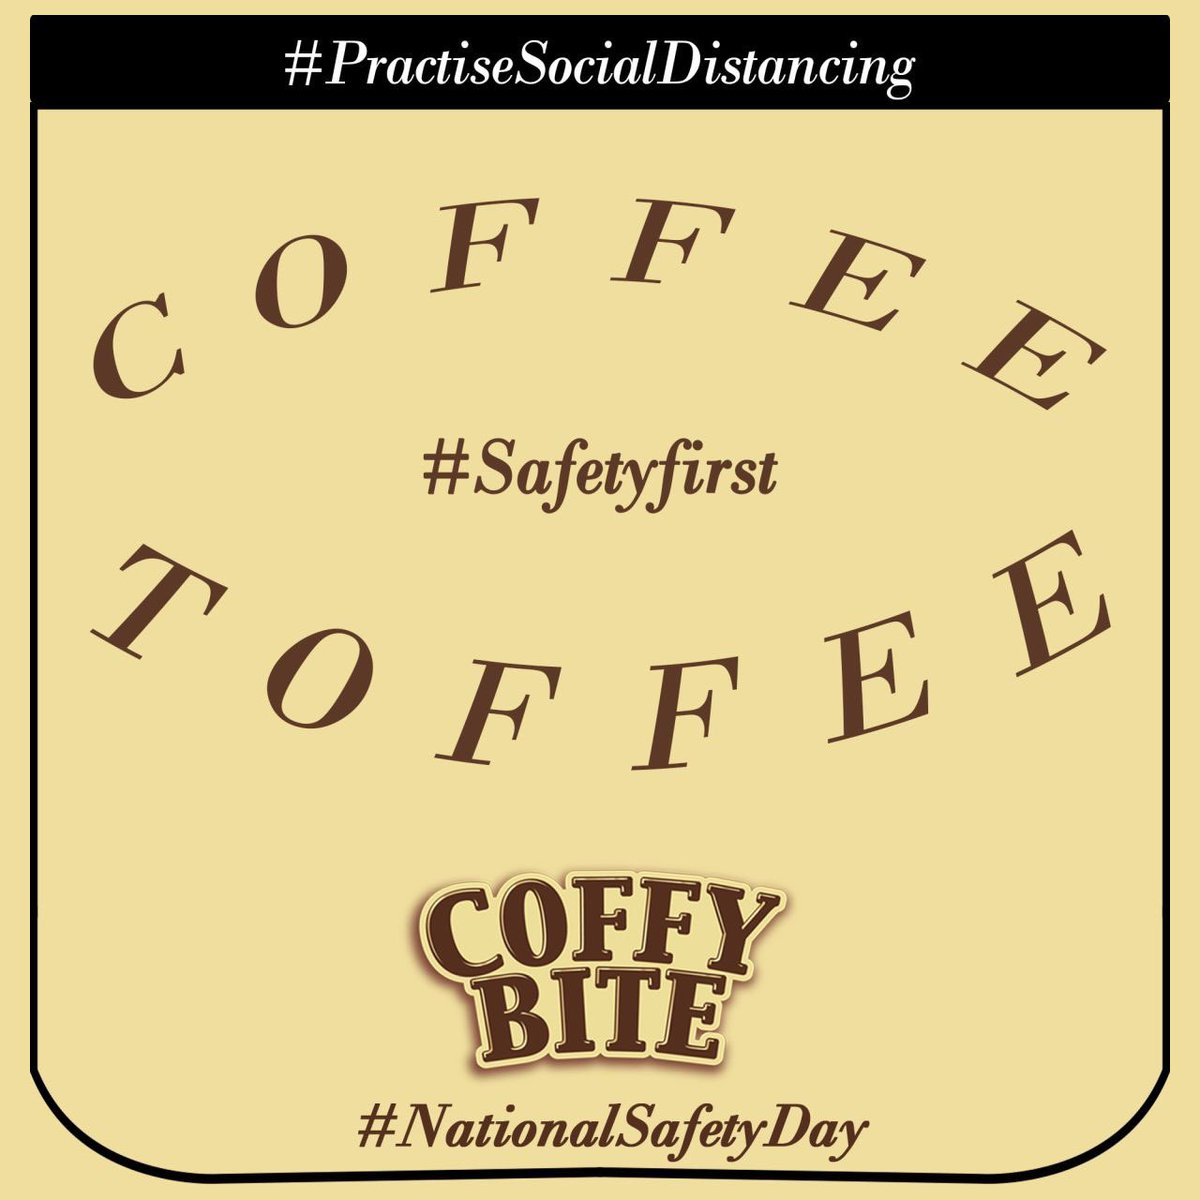 #CoffyBite #Argument #SafetyFirst #NationalSafetyDay  #lotte #lotteindia  #cpg #fmcg #foodproduction #lottegroup #confectionery #food #insta #bhfyp #march2021 #march #mar4 #march4 #safety #safetyfirst